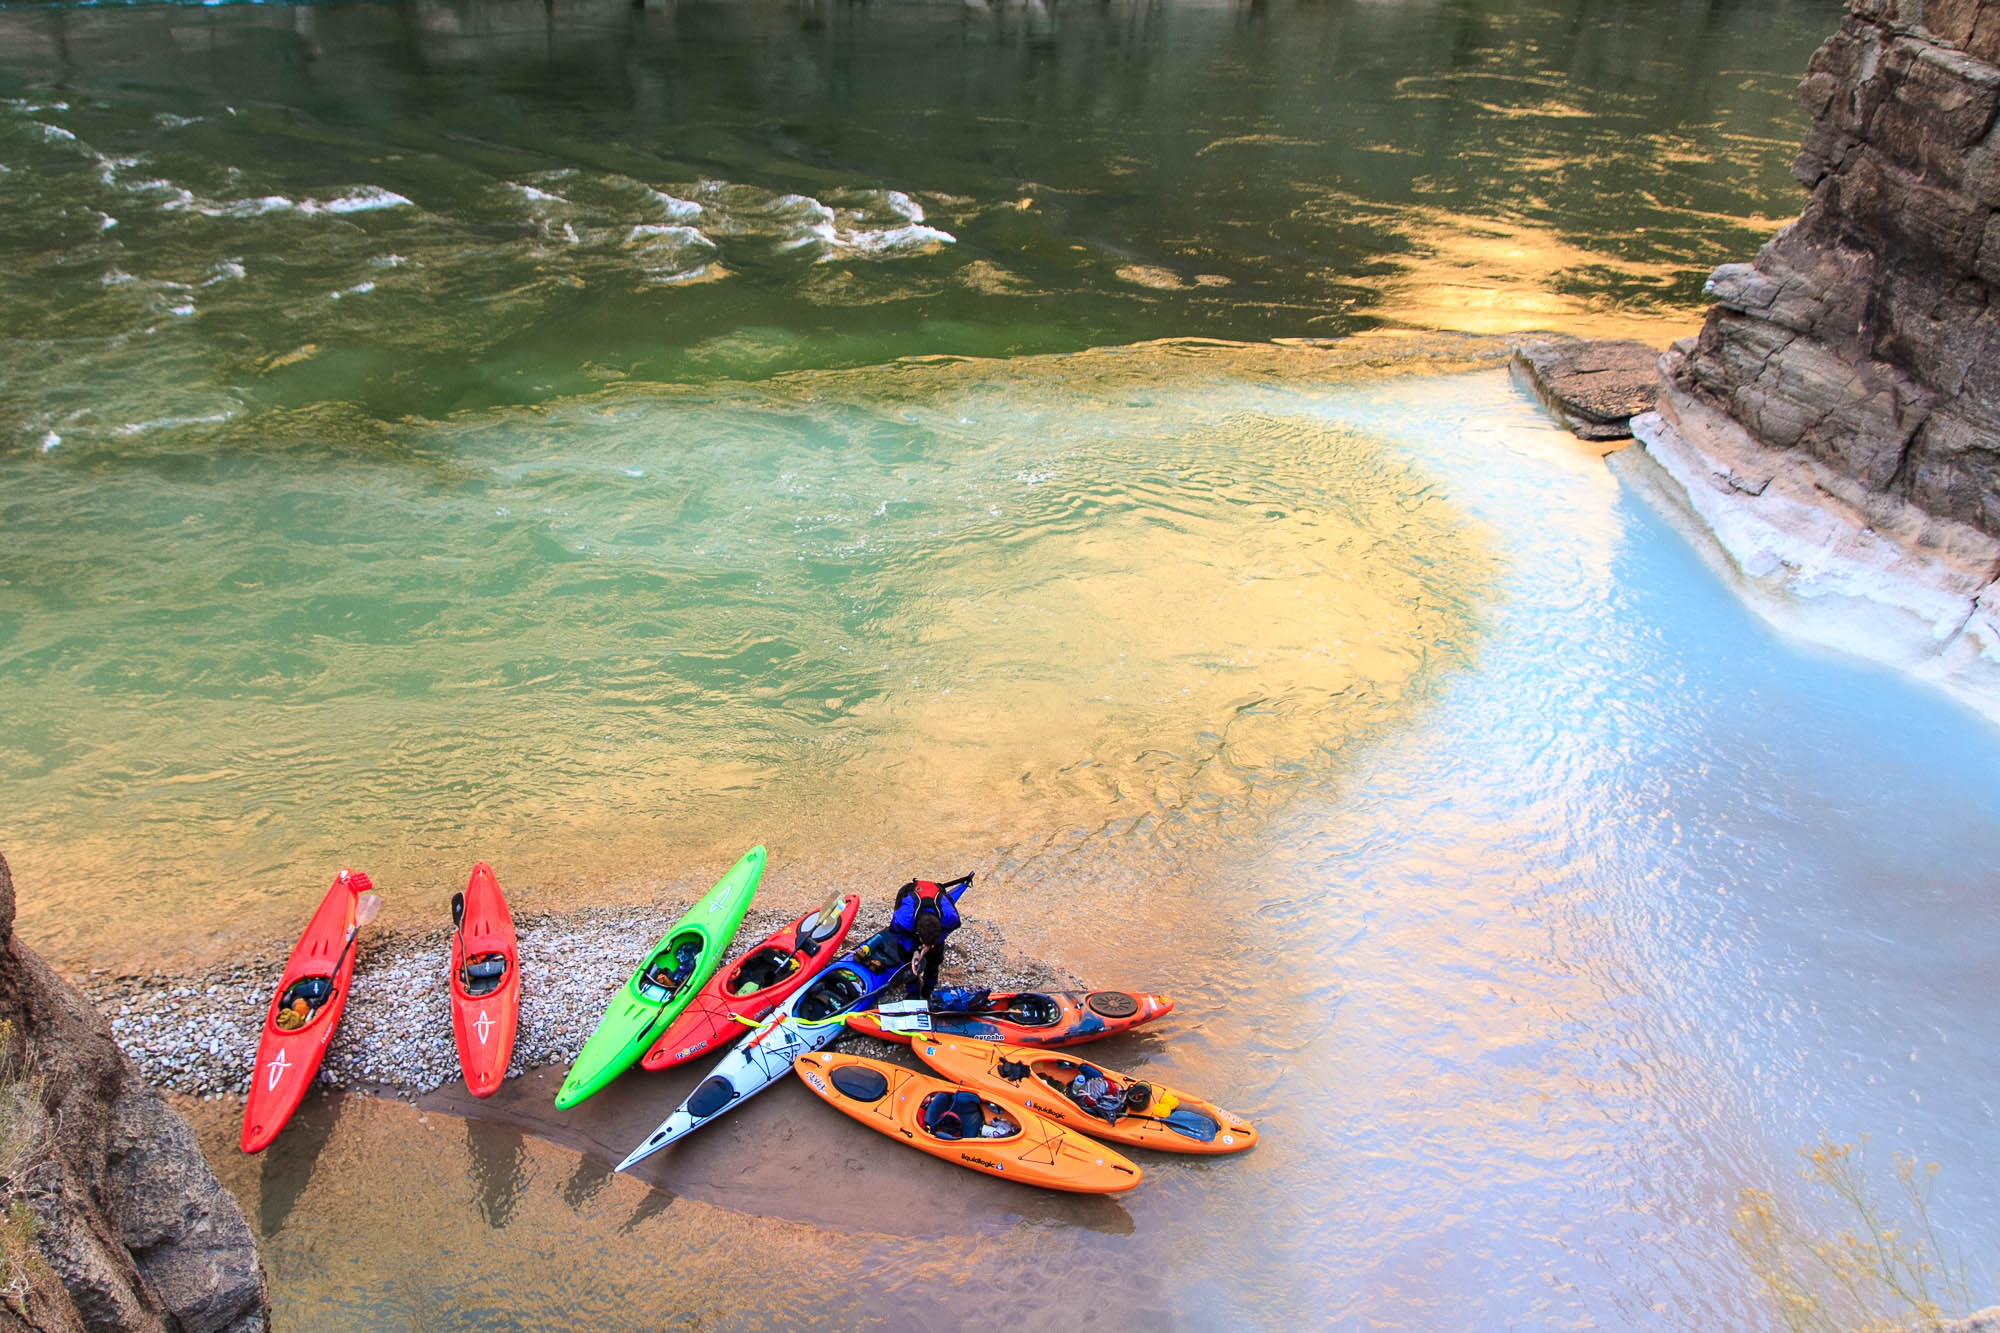 Boat Choice for Self-support Kayaking the Grand Canyon